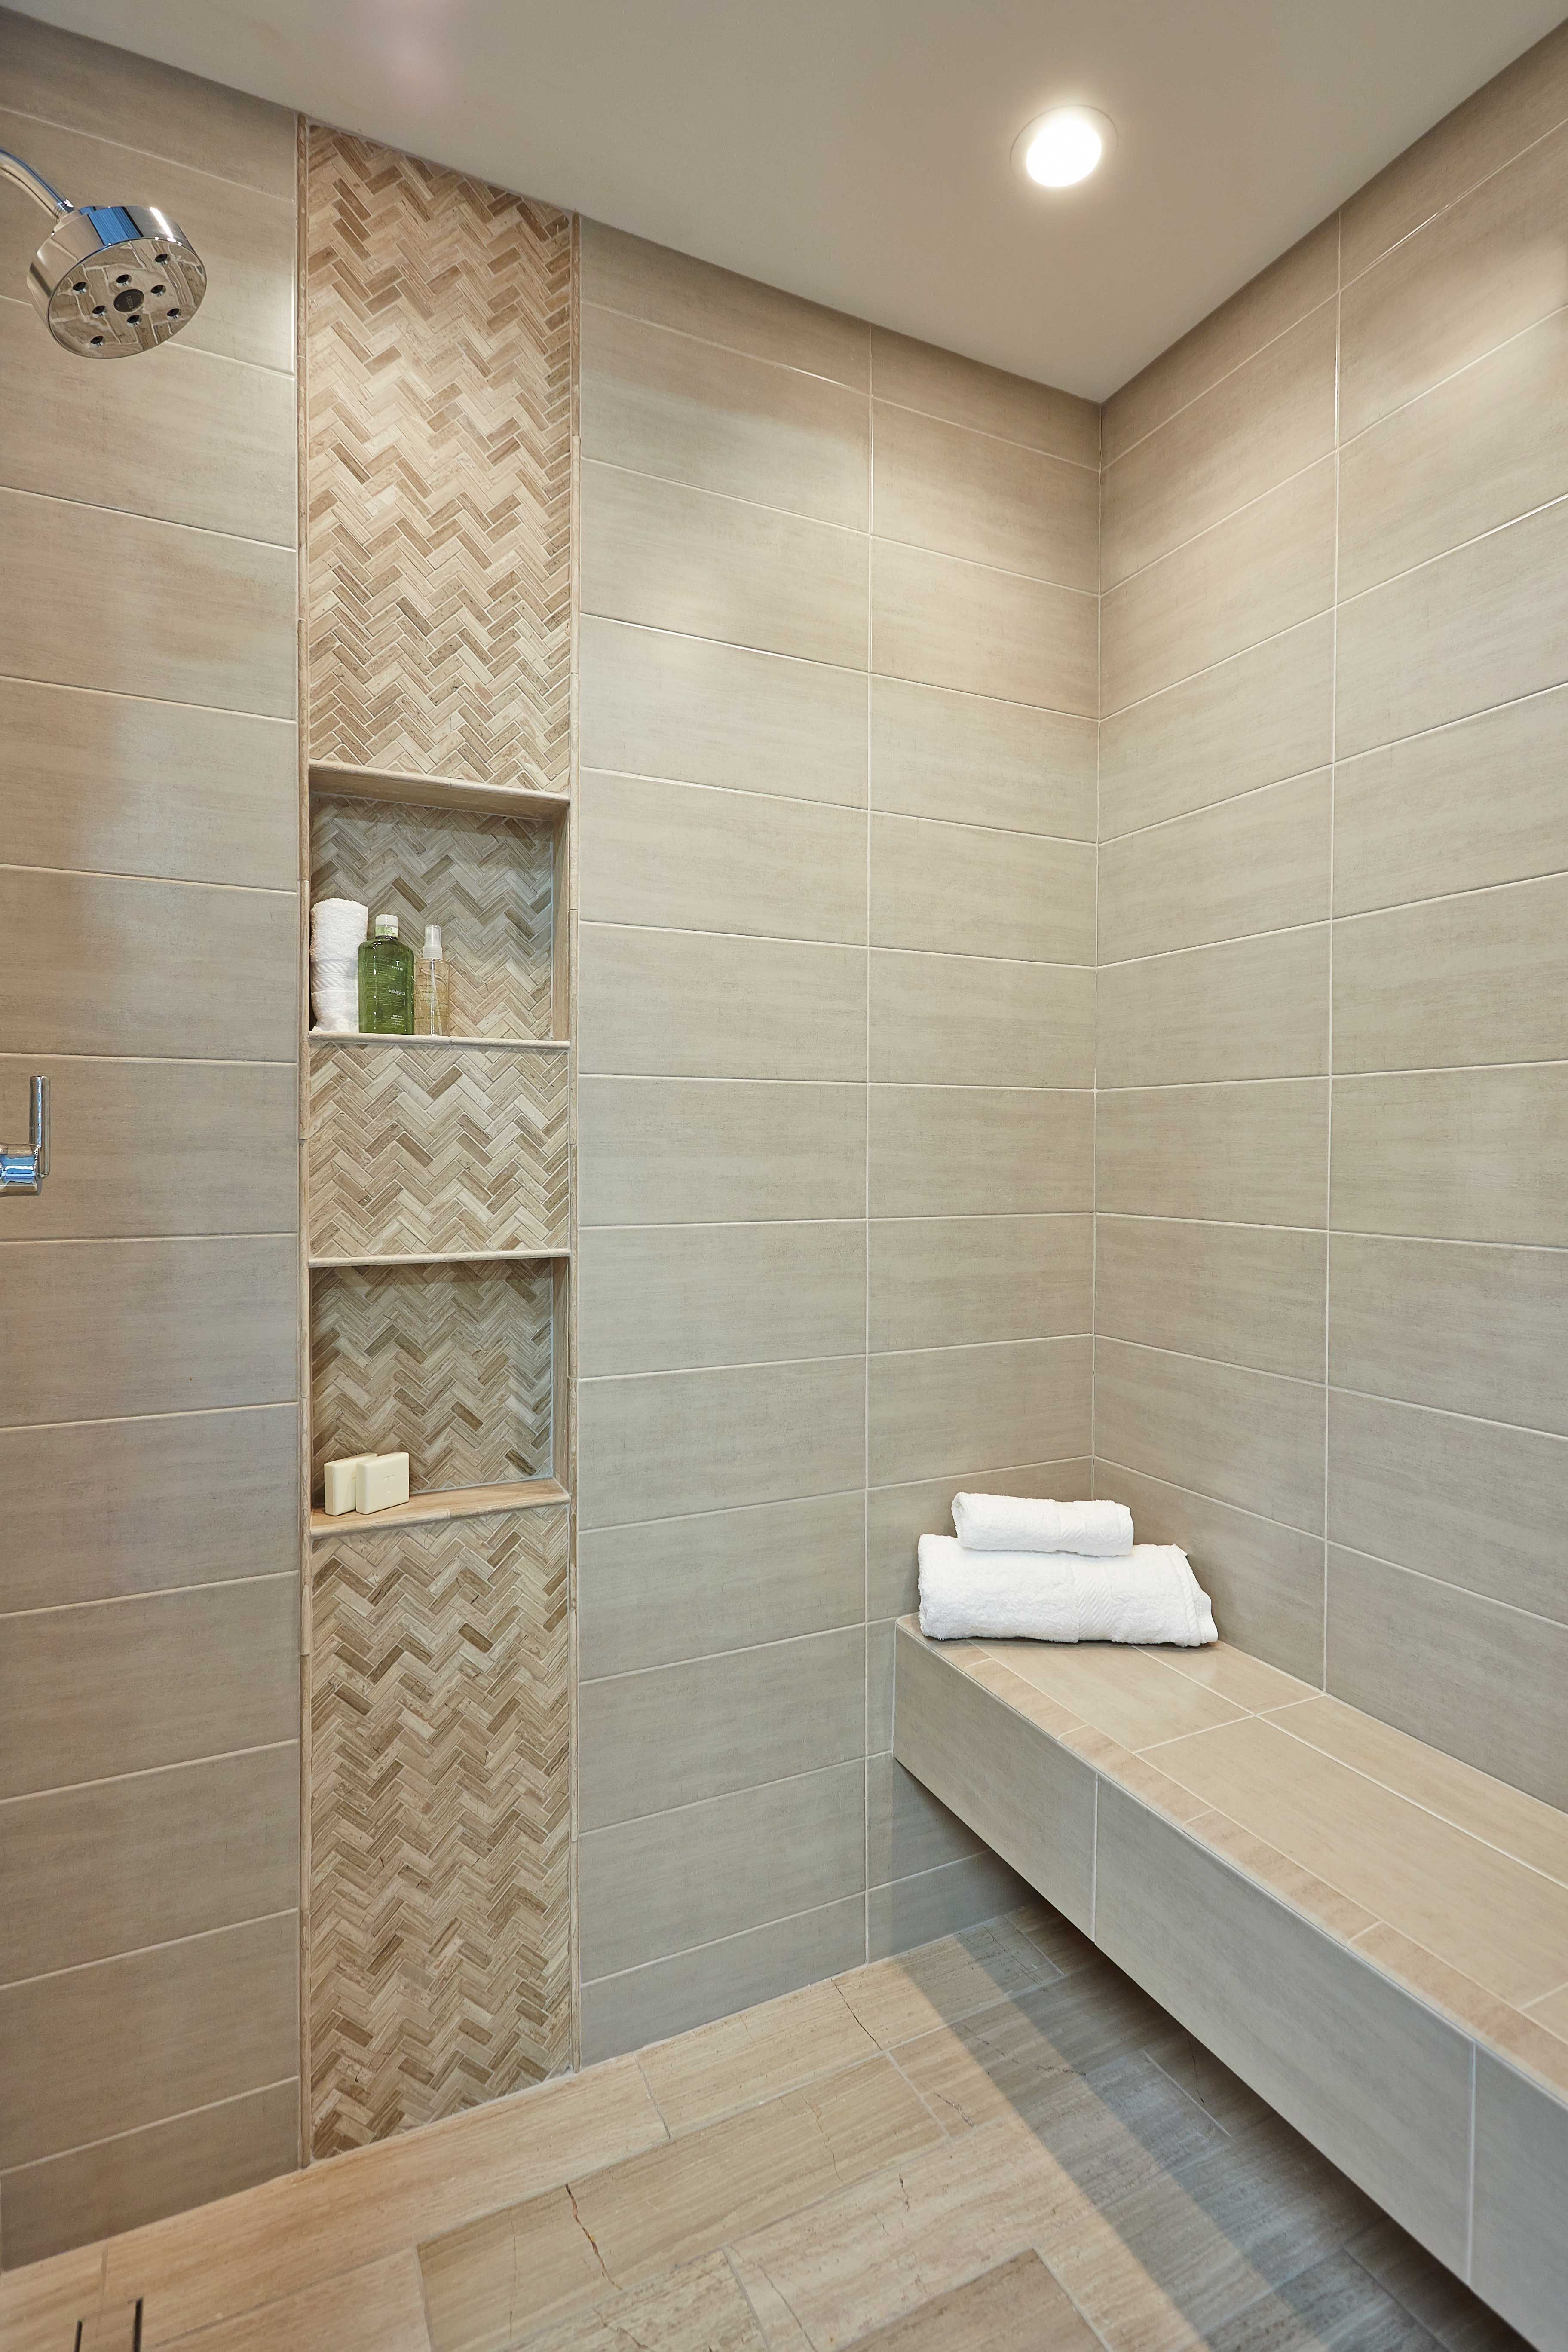 Bathroom shower accent wall tile legno small herringbone for Bathroom designs using mariwasa tiles